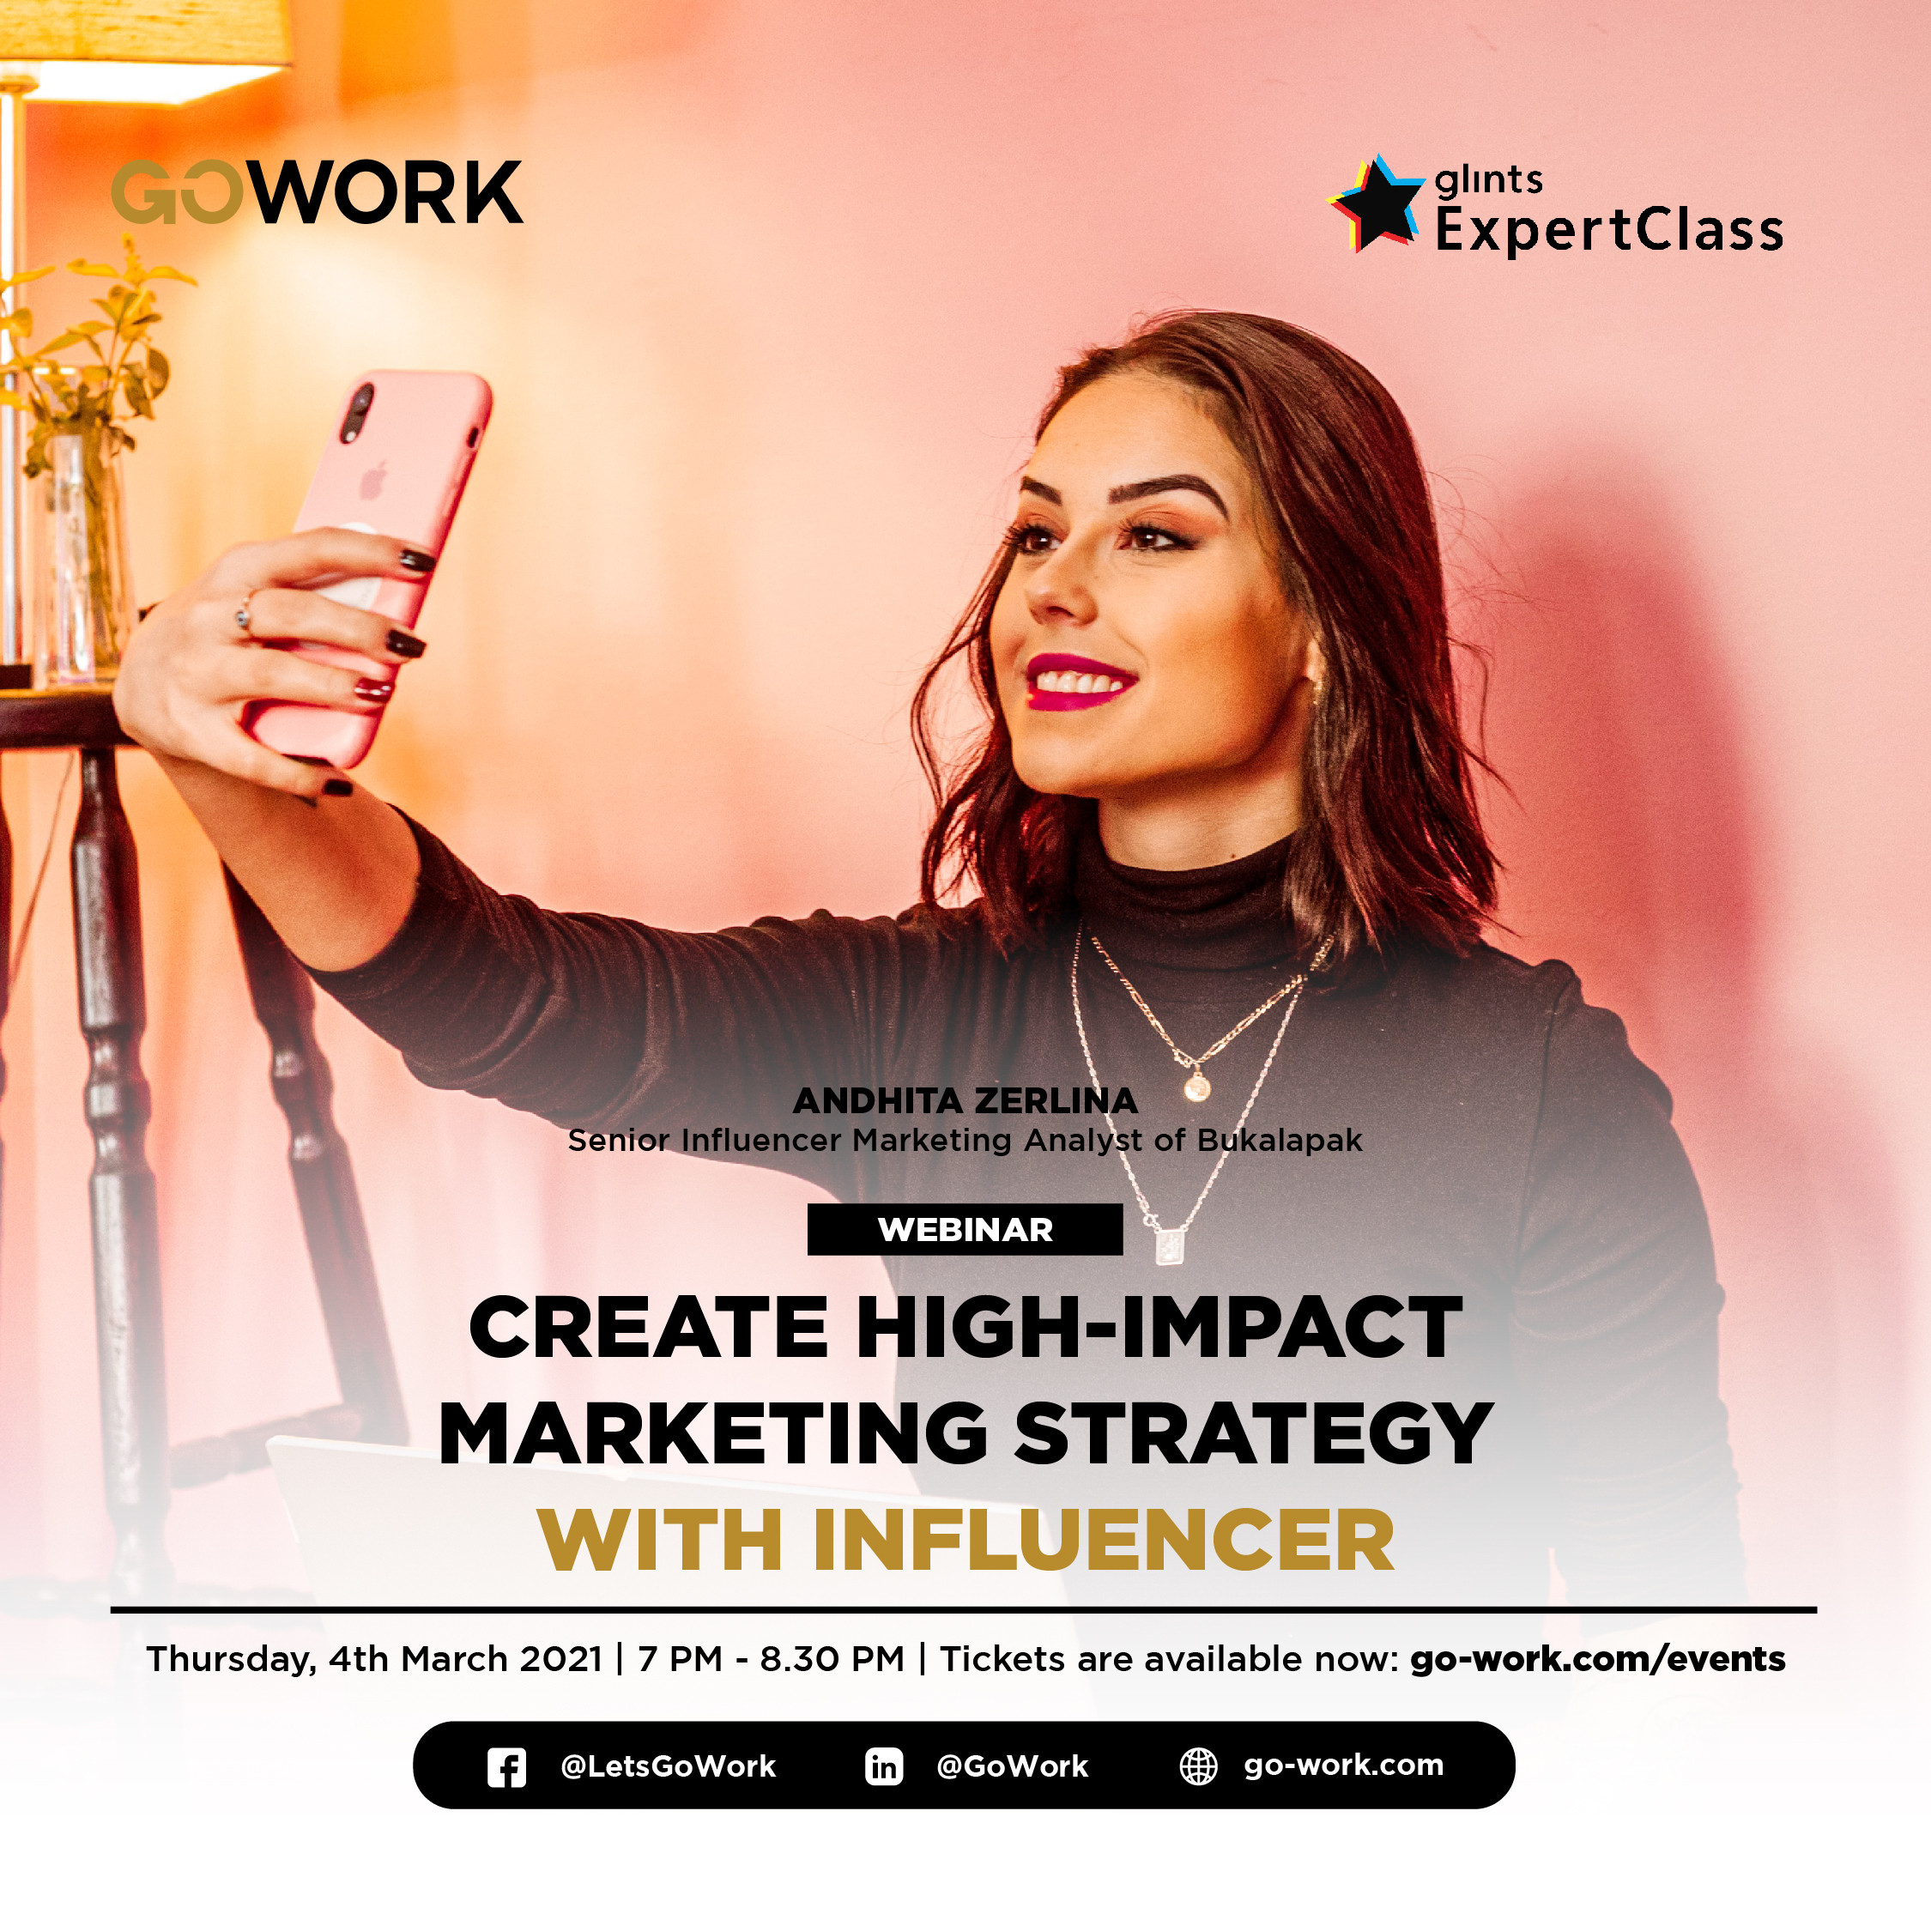 Create High-Impact Marketing Strategy with Influencer